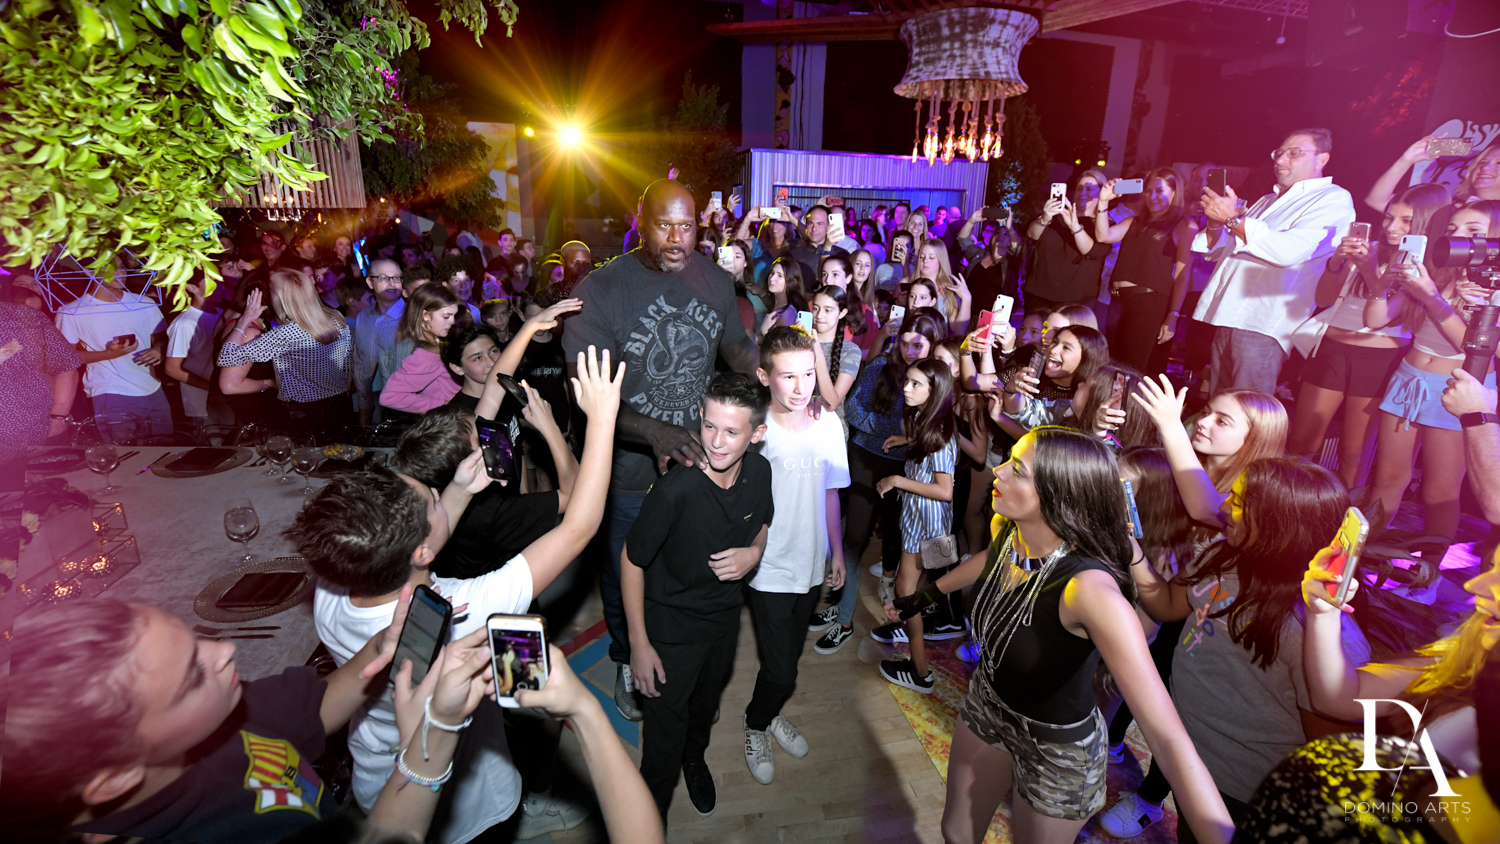 Shaquille O Neal at Urban Graffiti BNai Mitzvah with celebrity Shaq at Xtreme Action Park by Domino Arts Photography